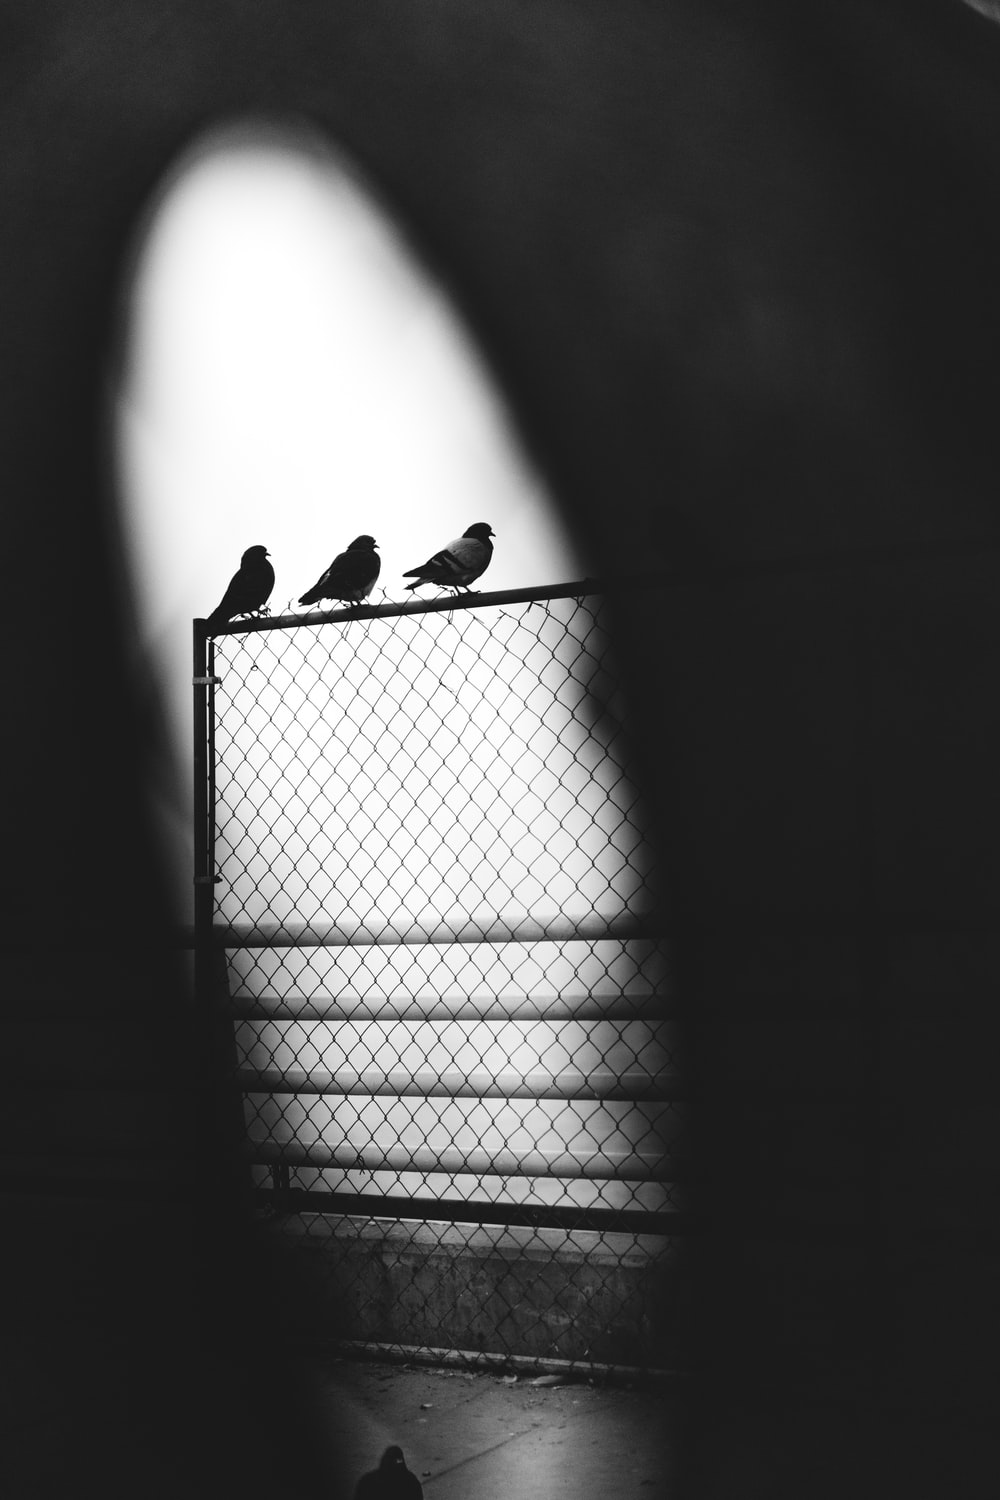 grayscale photography three pigeons